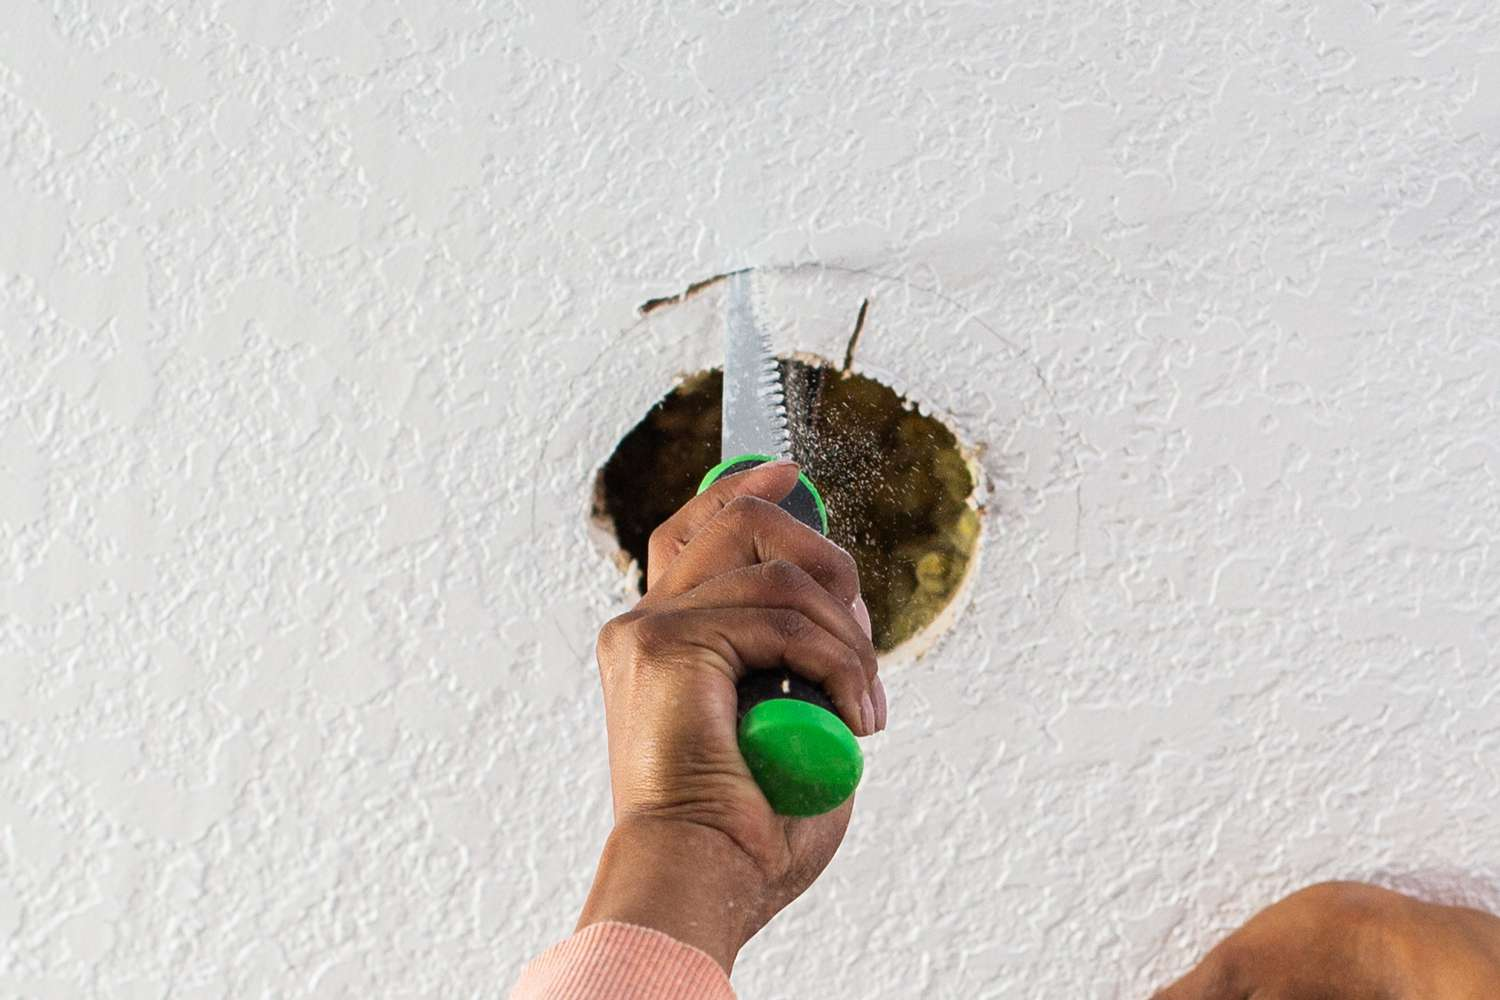 Fixture hole cut out with drywall saw following outline